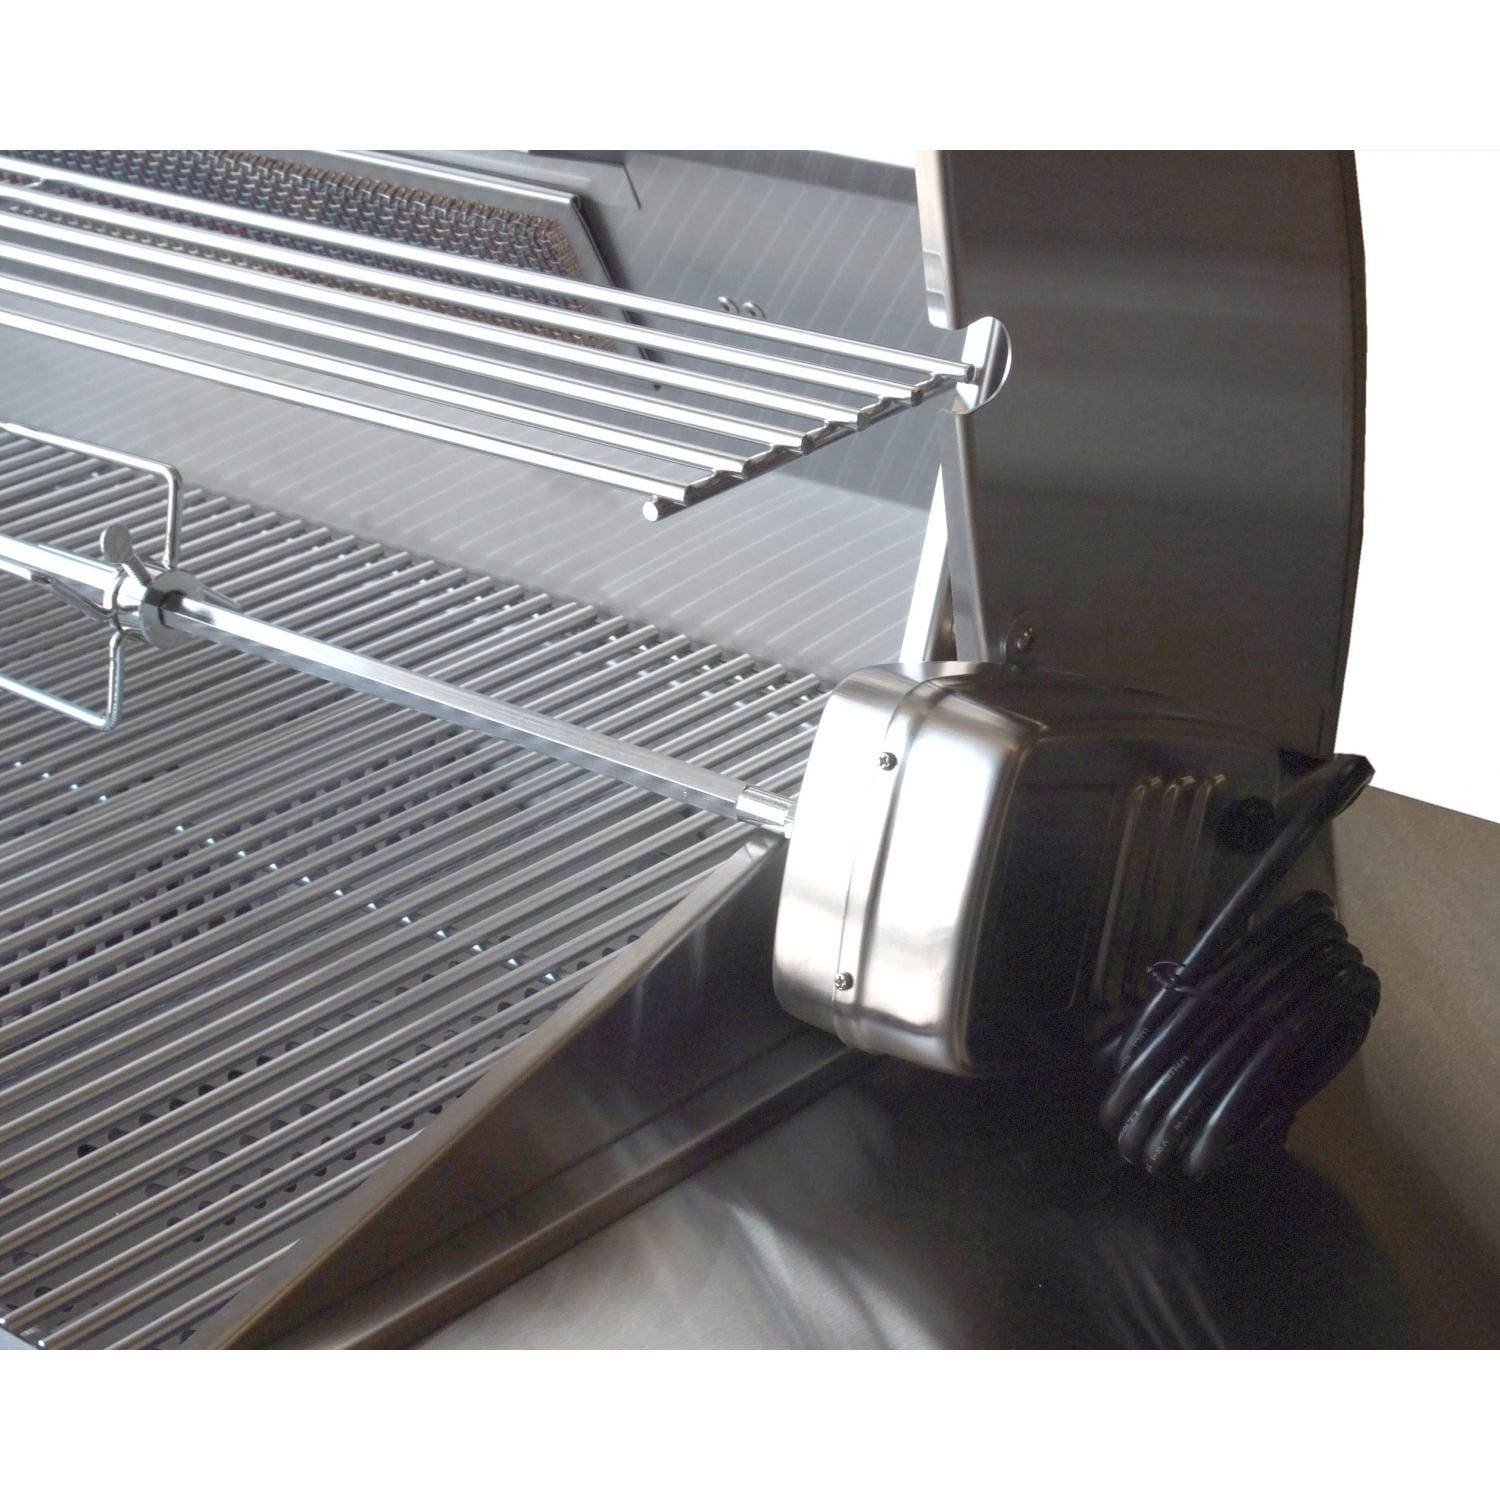 American Outdoor Grill 24-Inch Gas Grill Warming Rack